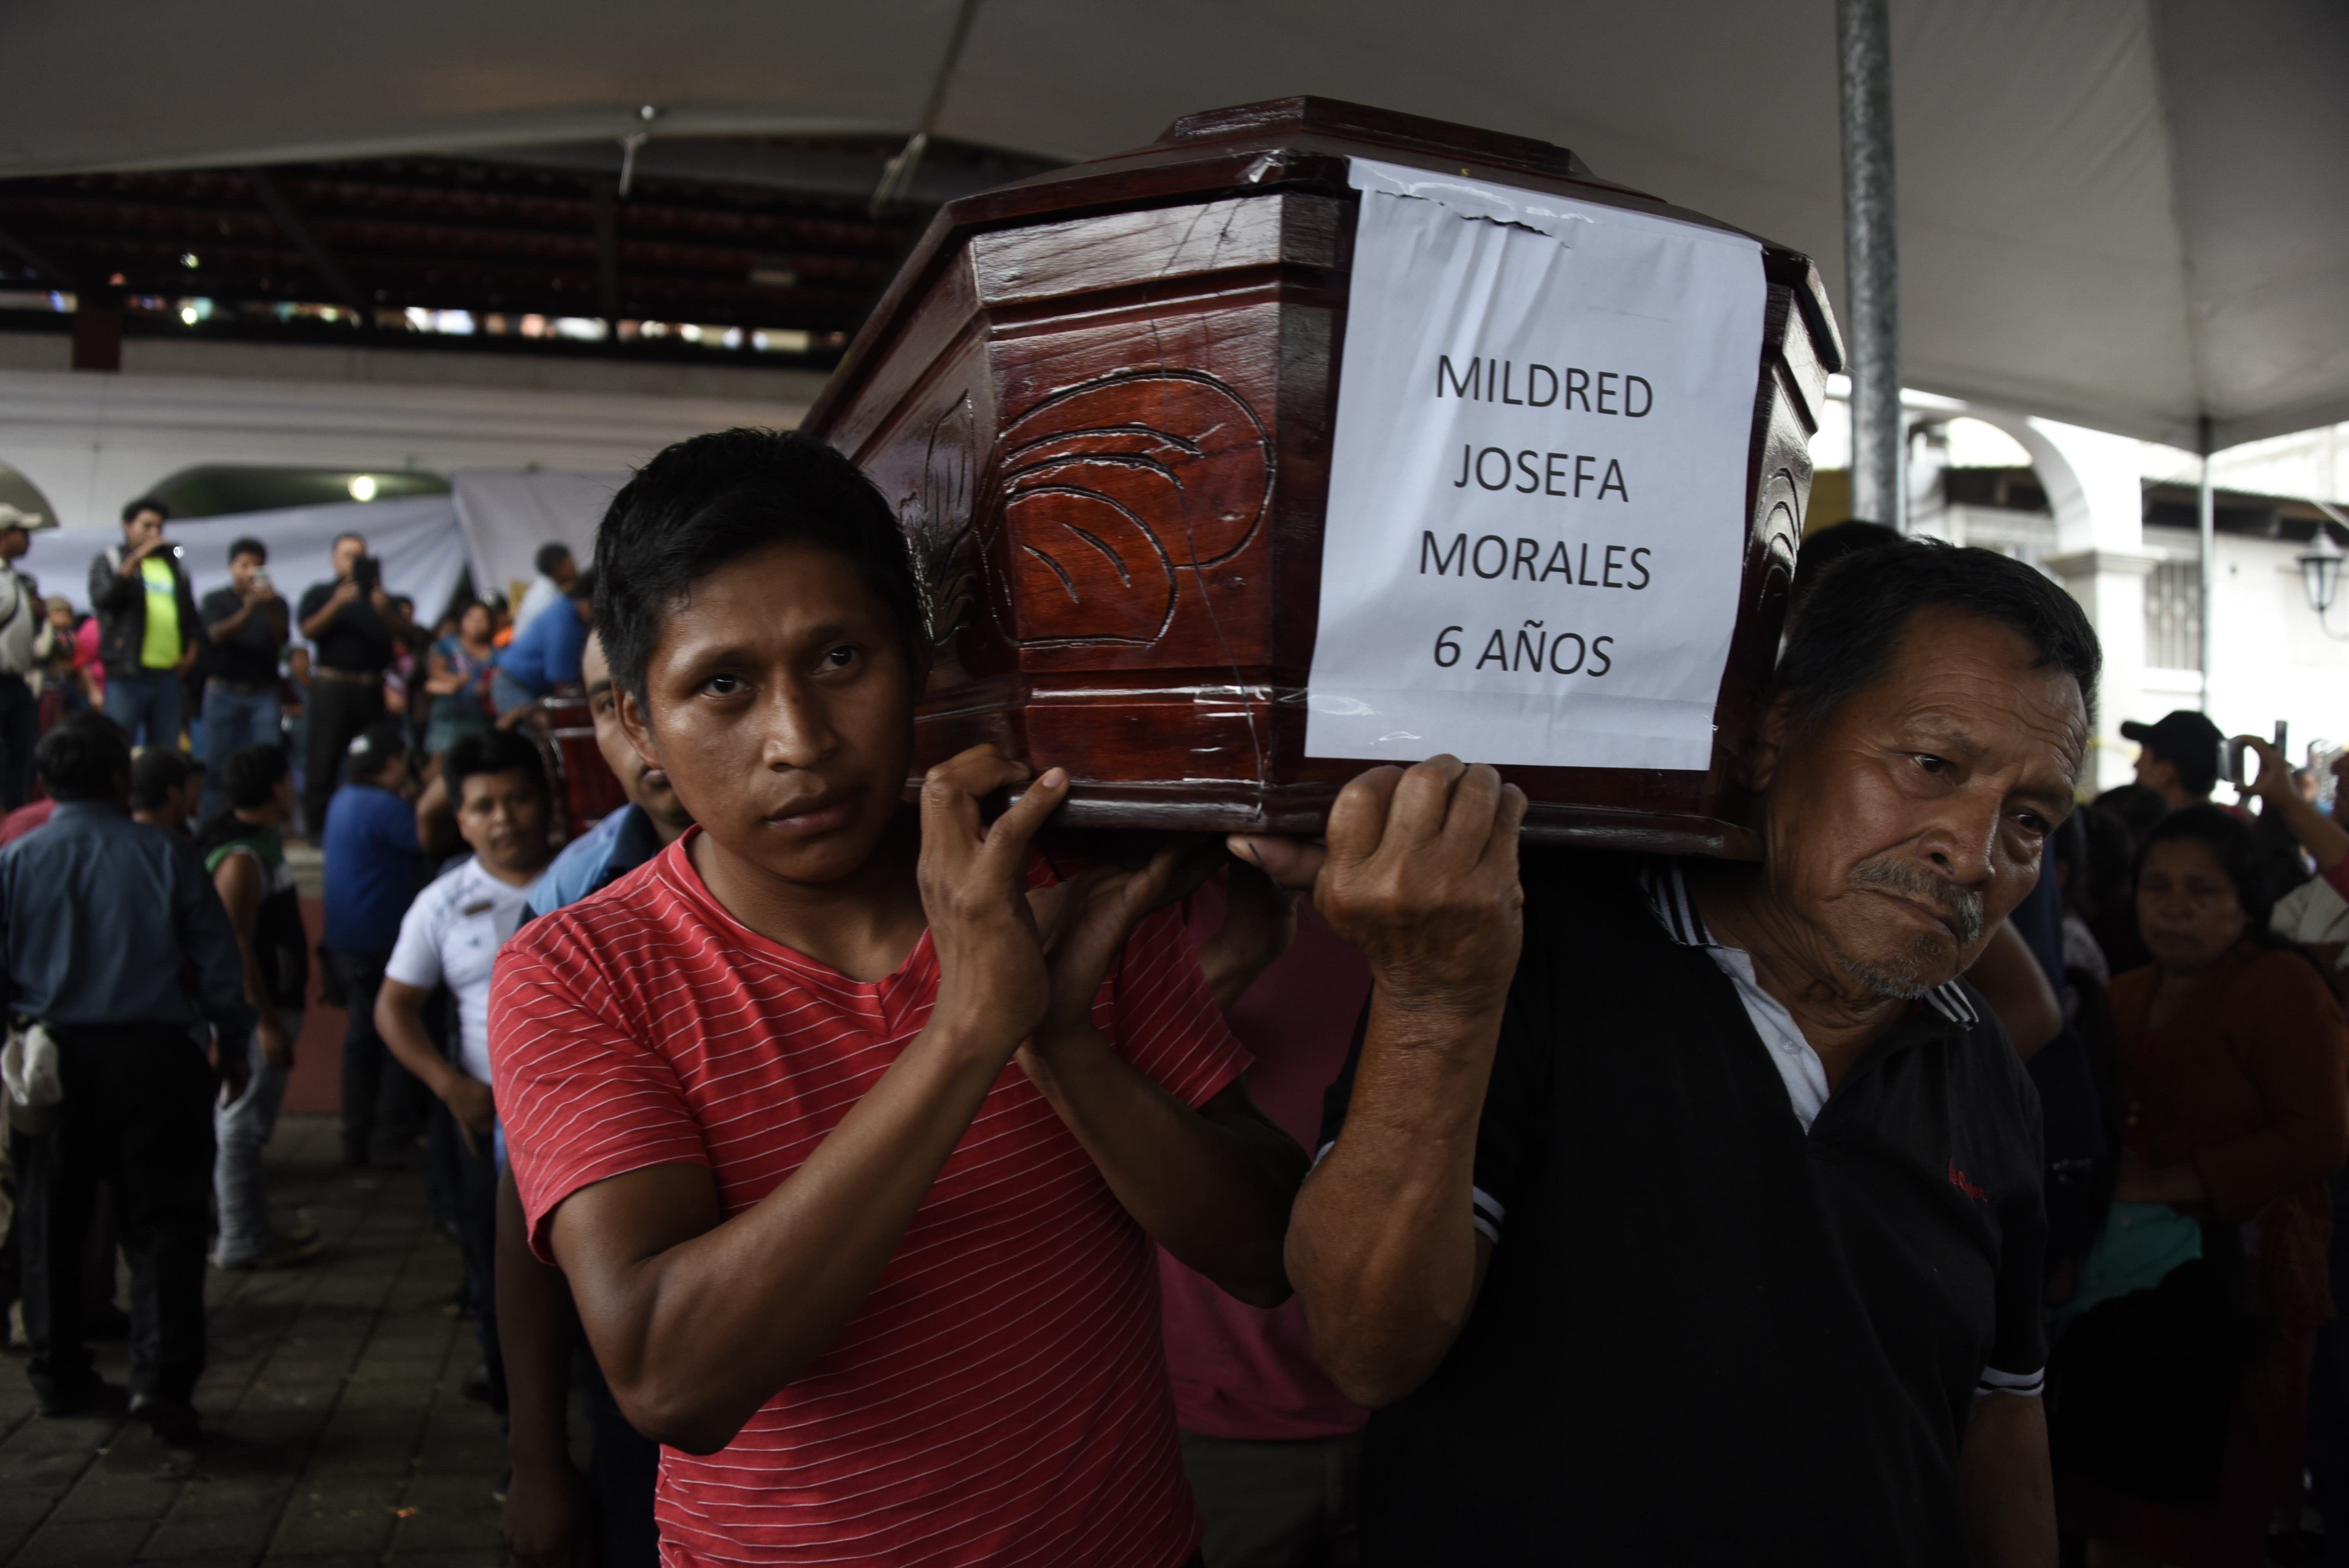 Two men carry the coffin of a little girl who died following the eruption of the Fuego volcano.